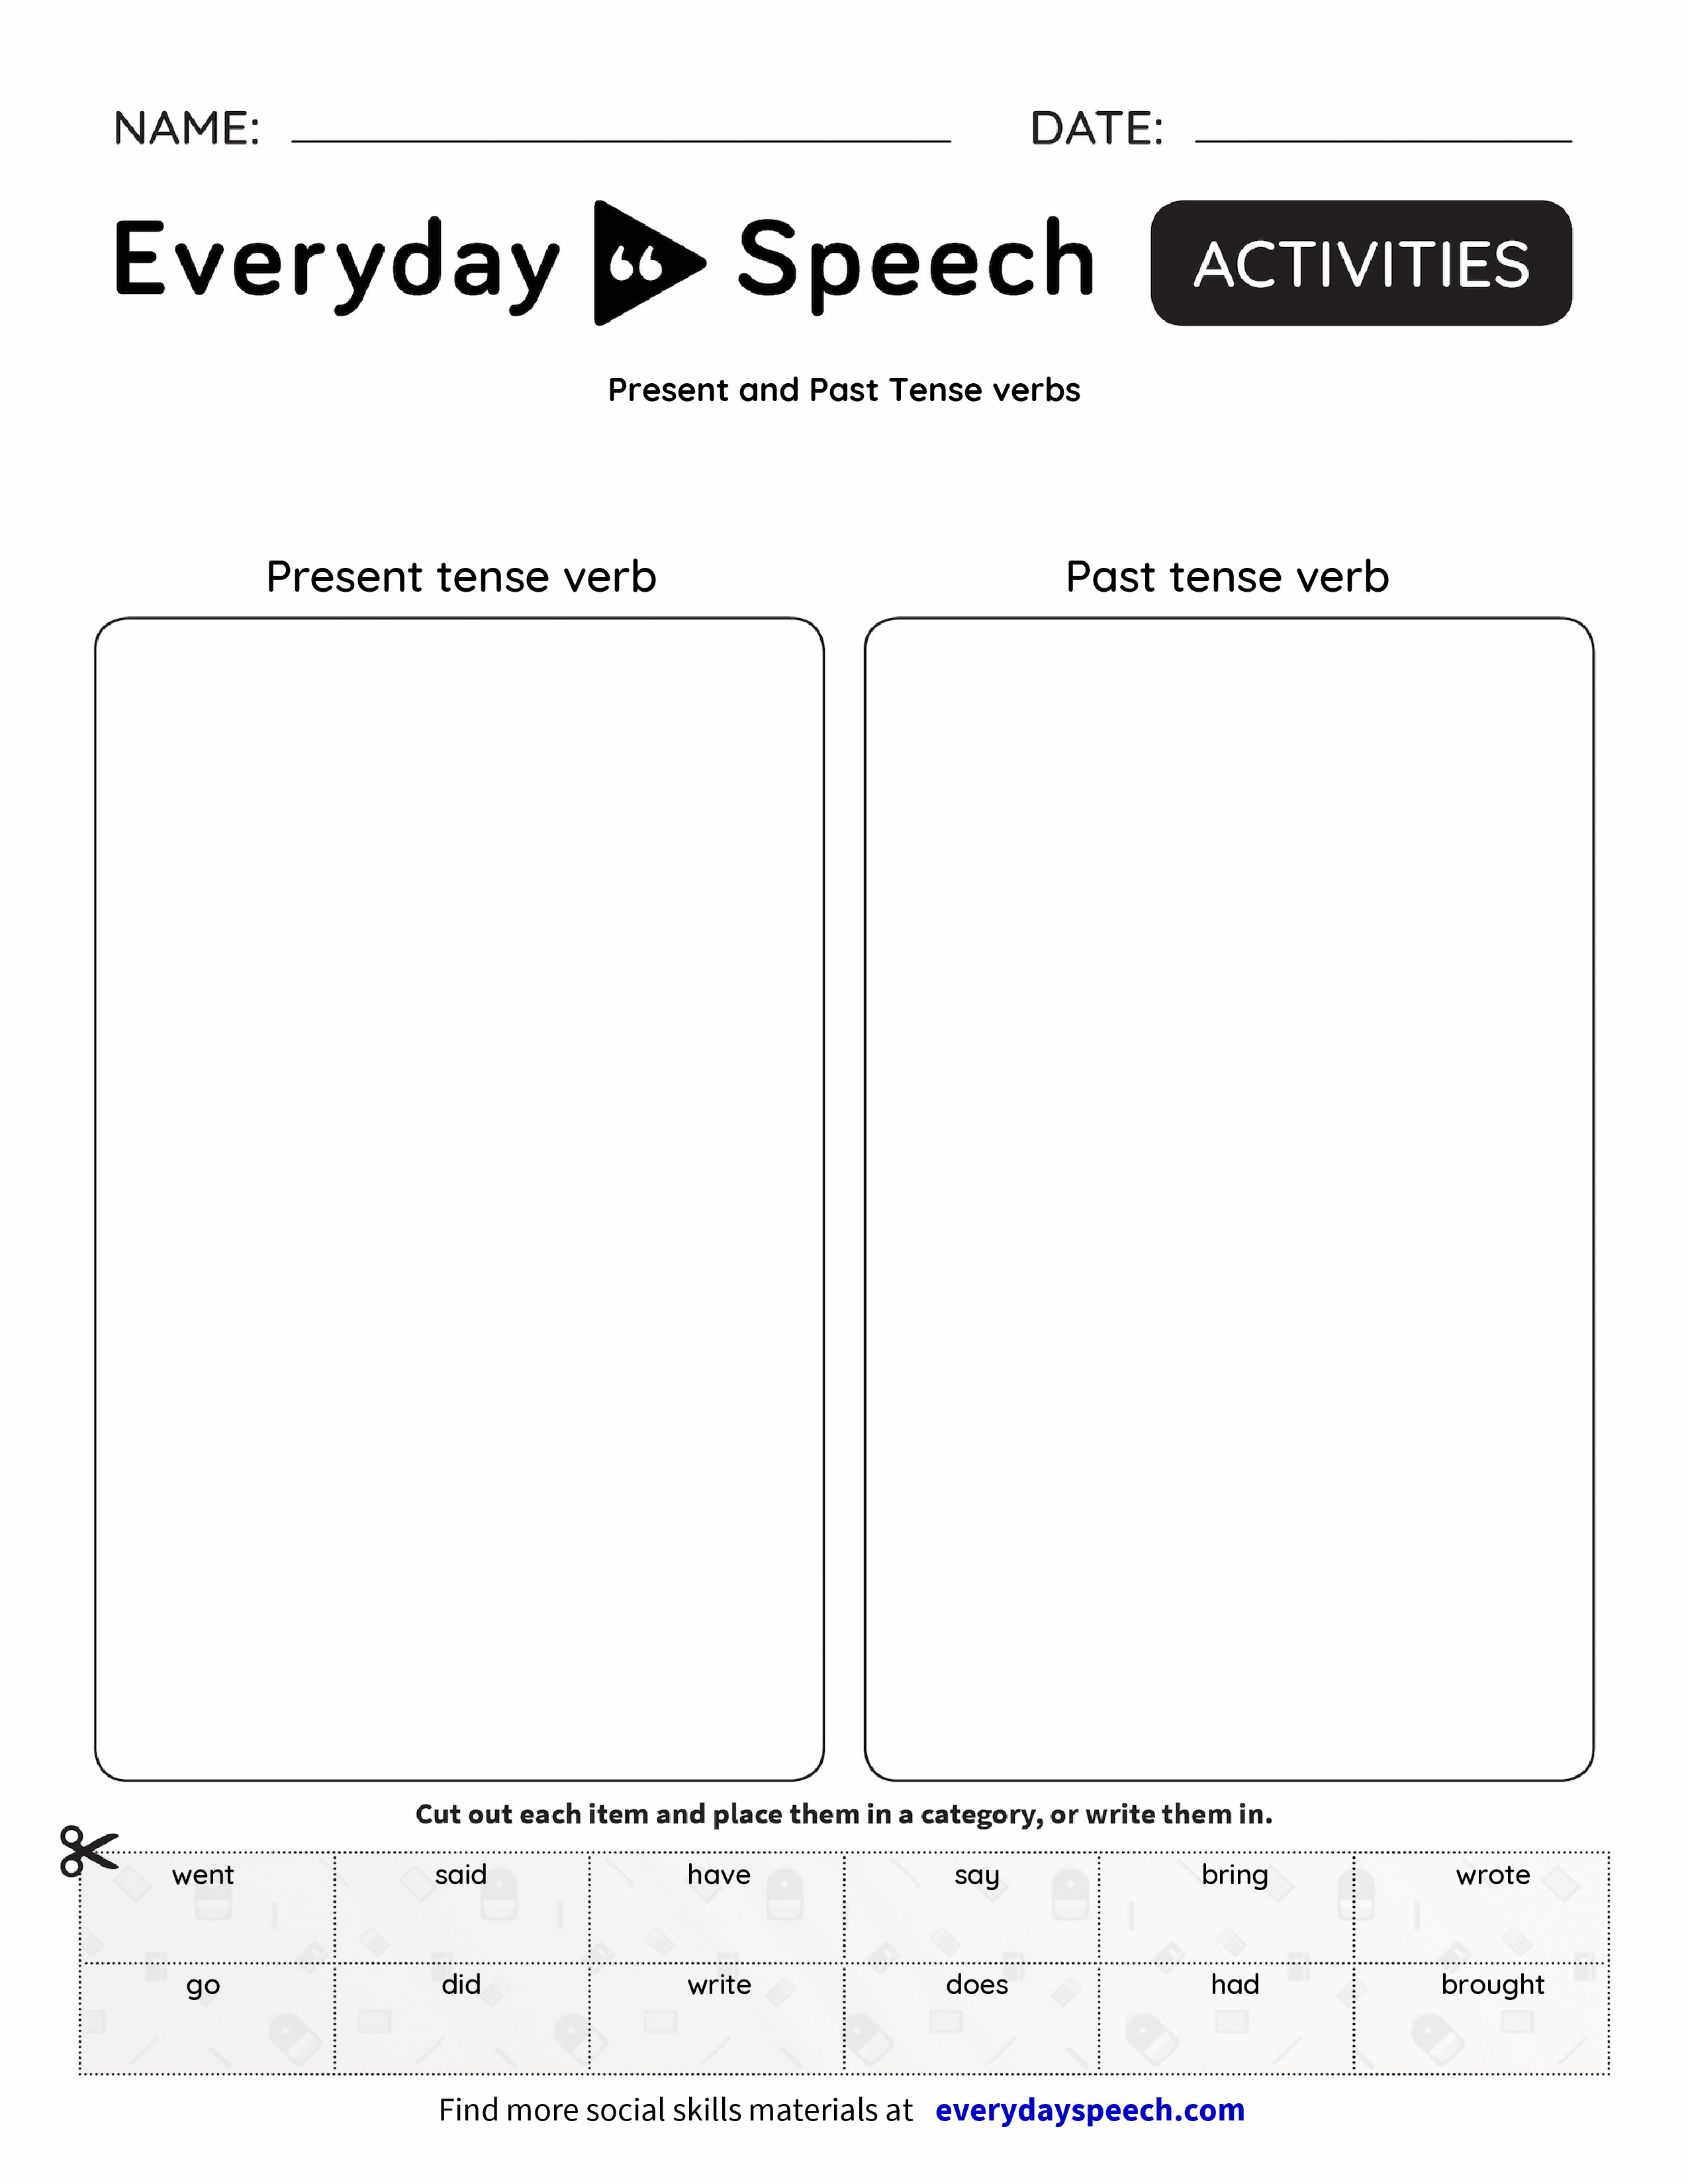 worksheet Past Tense Verbs Worksheet present and past tense verbs everyday speech preview preview